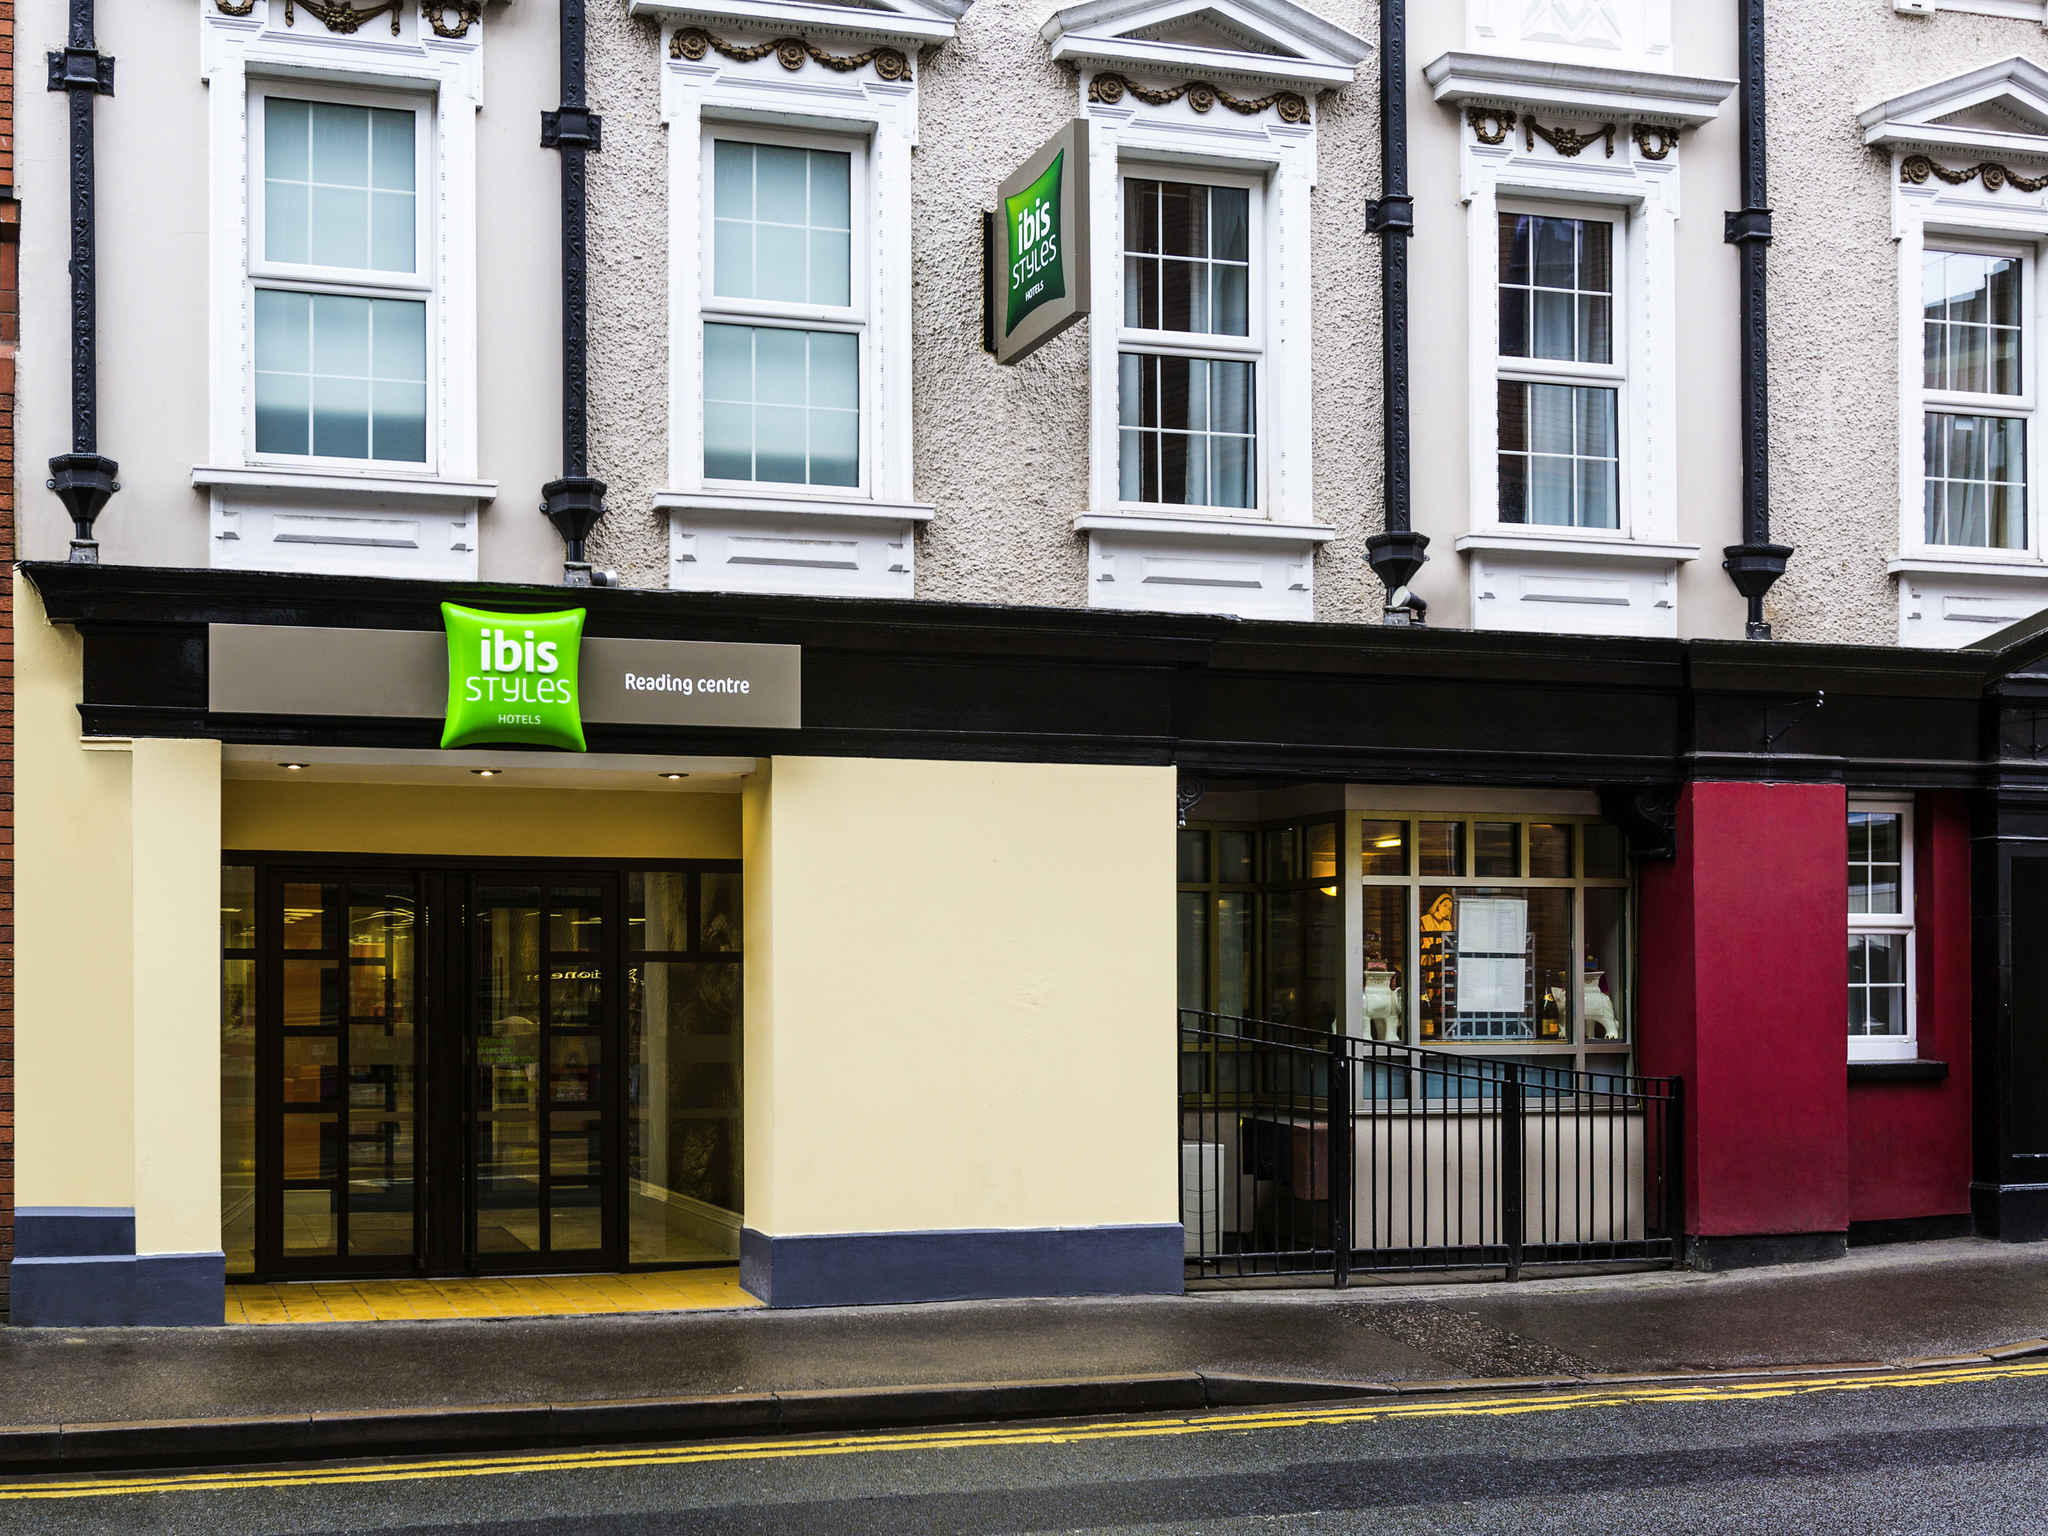 Hotell – ibis Styles Reading Centre